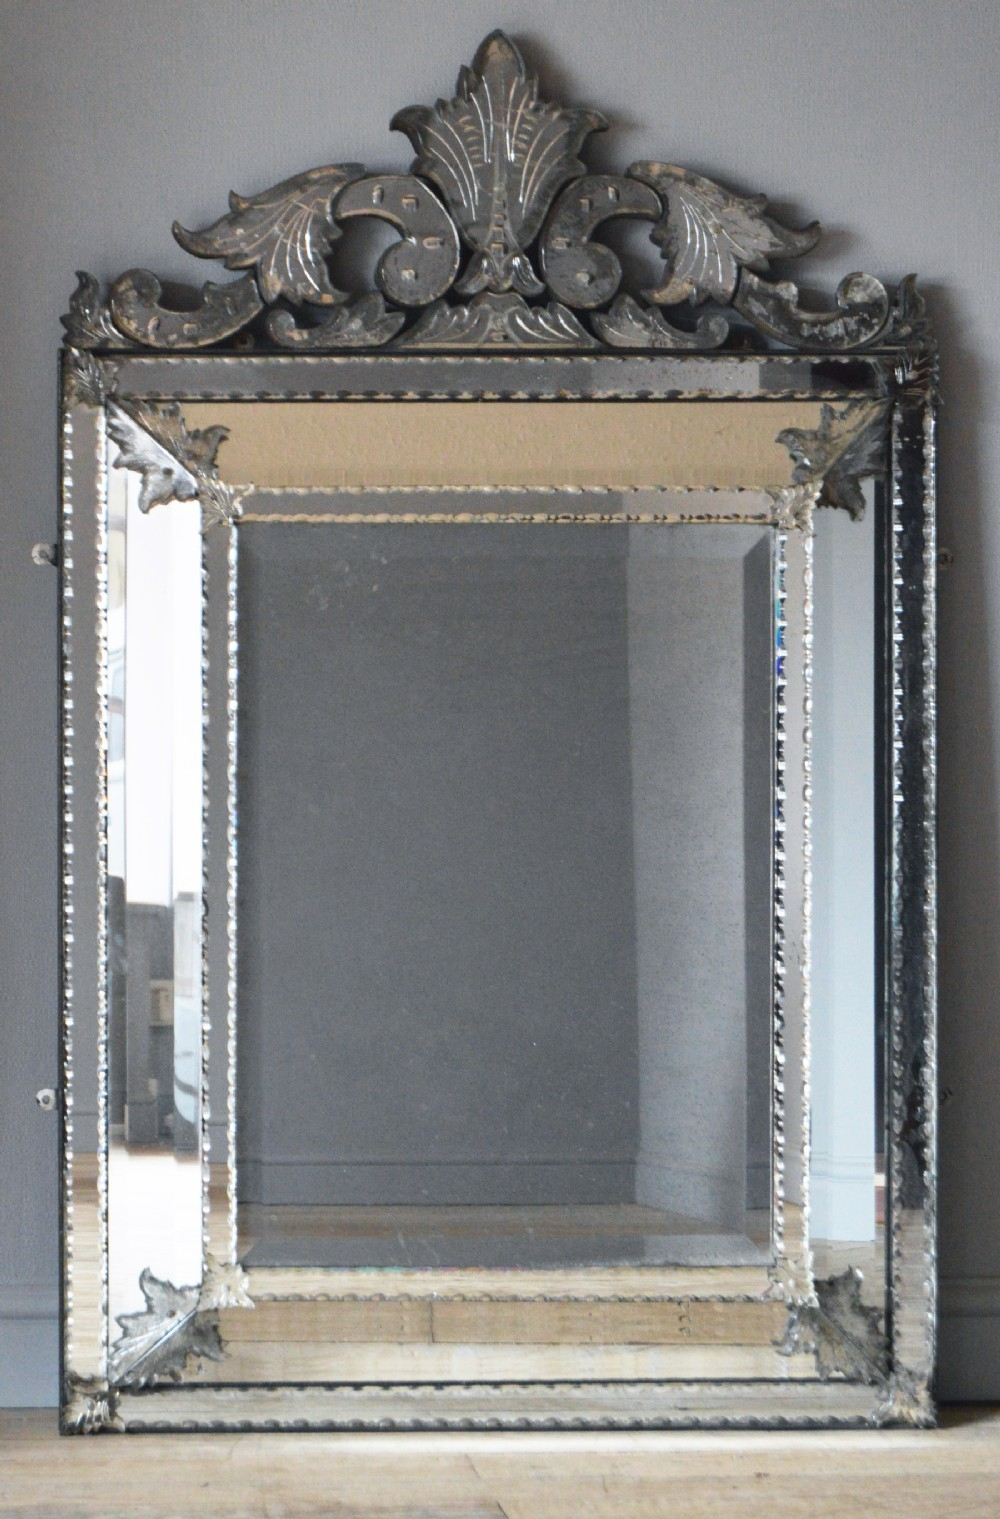 Antique Venetian Glass Mirror With Antique Venetian Mirrors (Image 4 of 15)